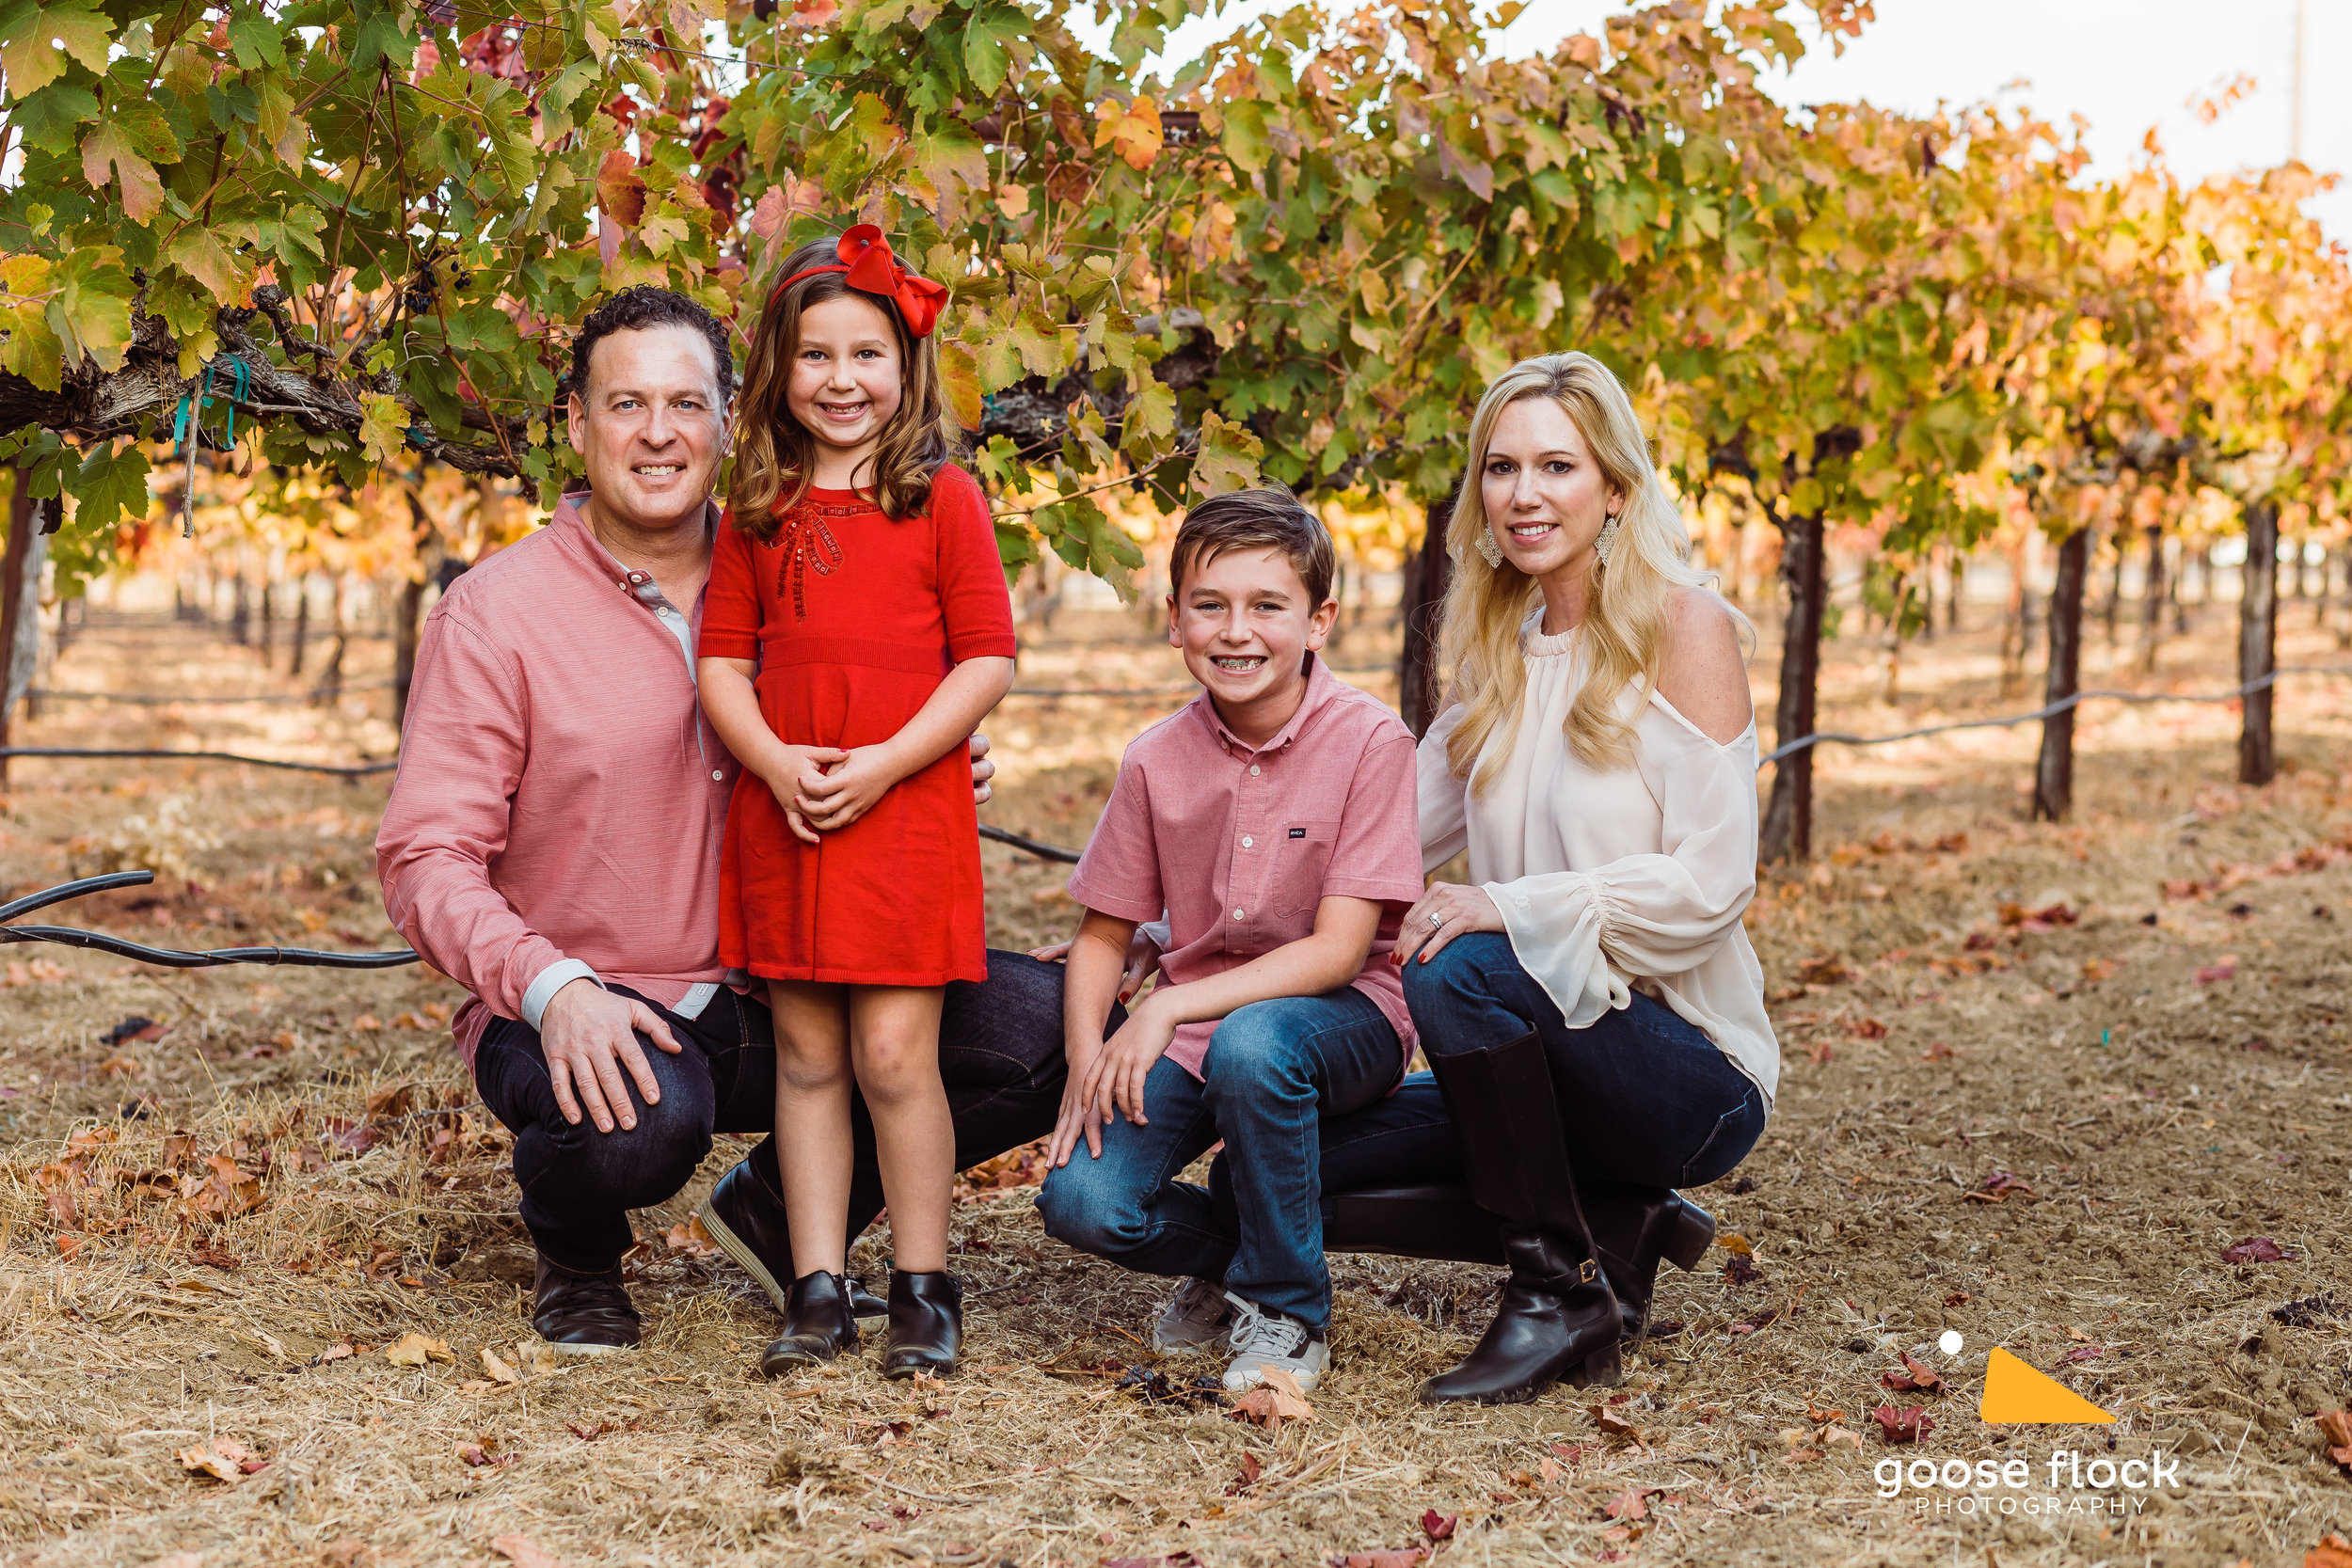 Family Portraits - Some of my favorite photoshoots are family portraits, because of the love I get to capture between parents and children. I have a lot of experience working with children from just a few months old all the way to teenagers